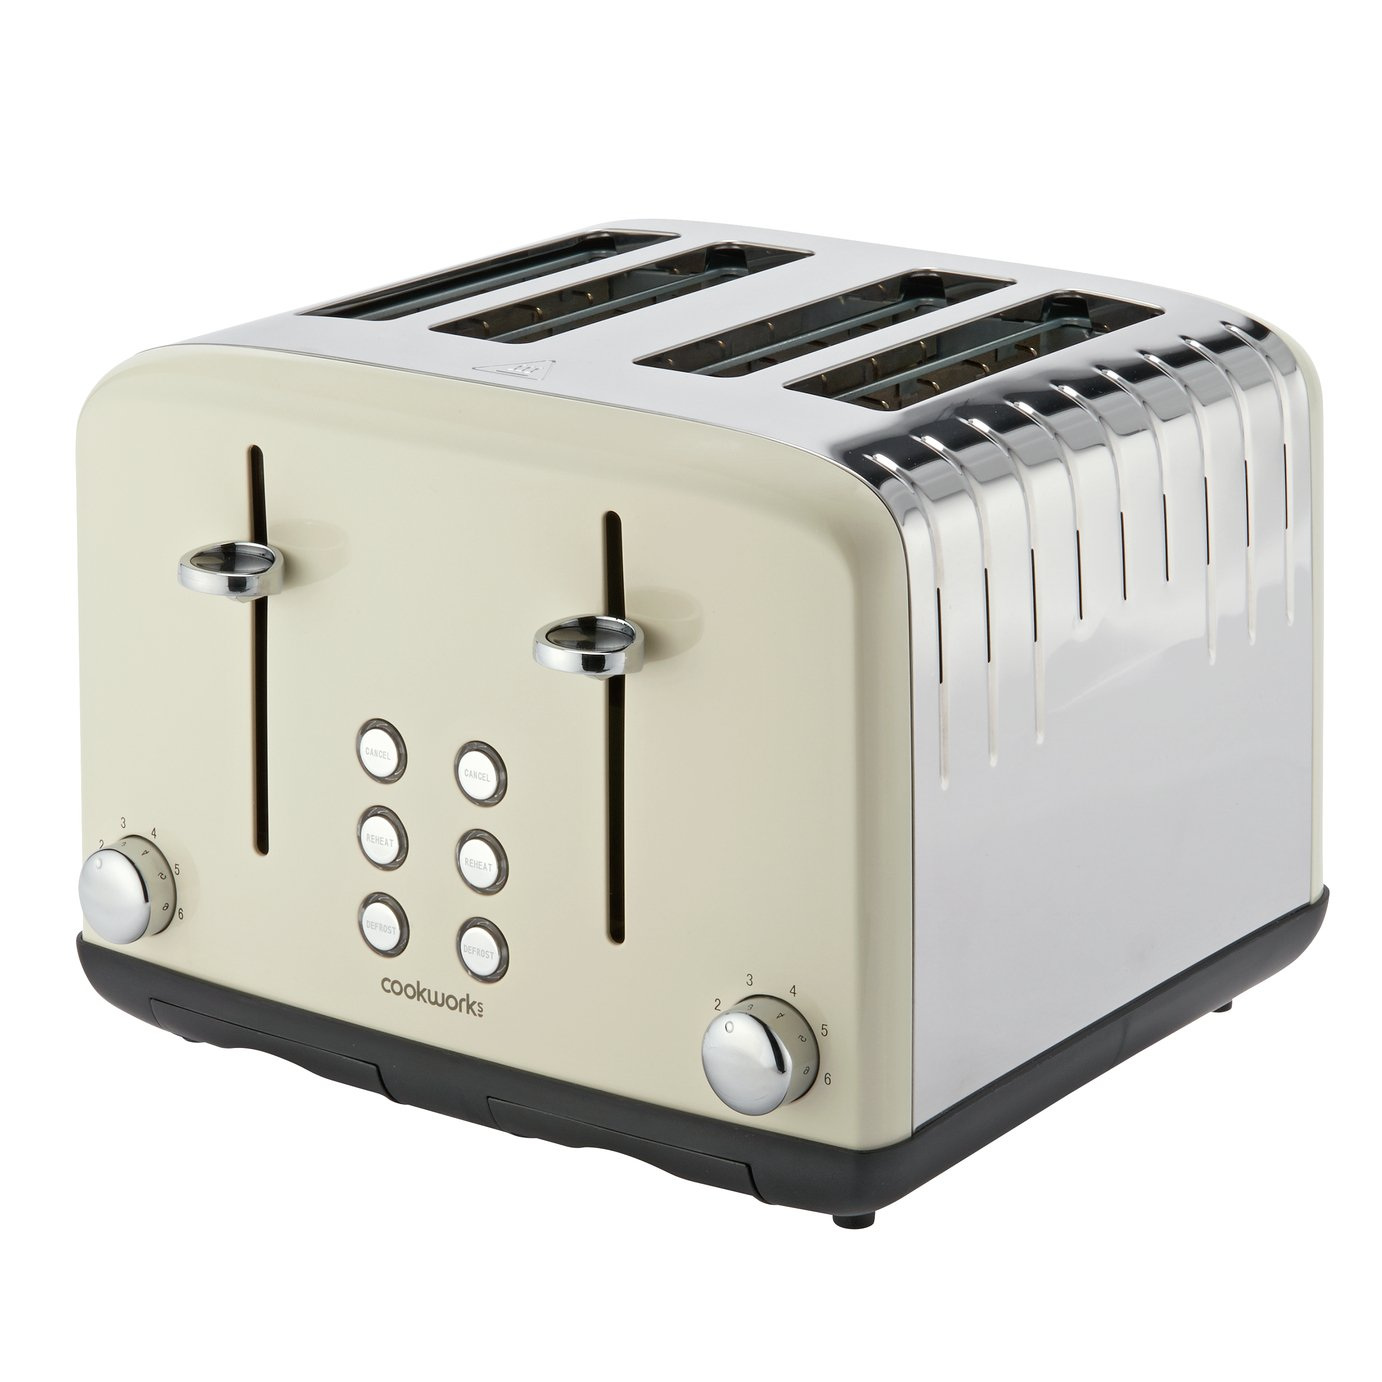 Cookworks Pyramid 4 Slice Toaster - Almond